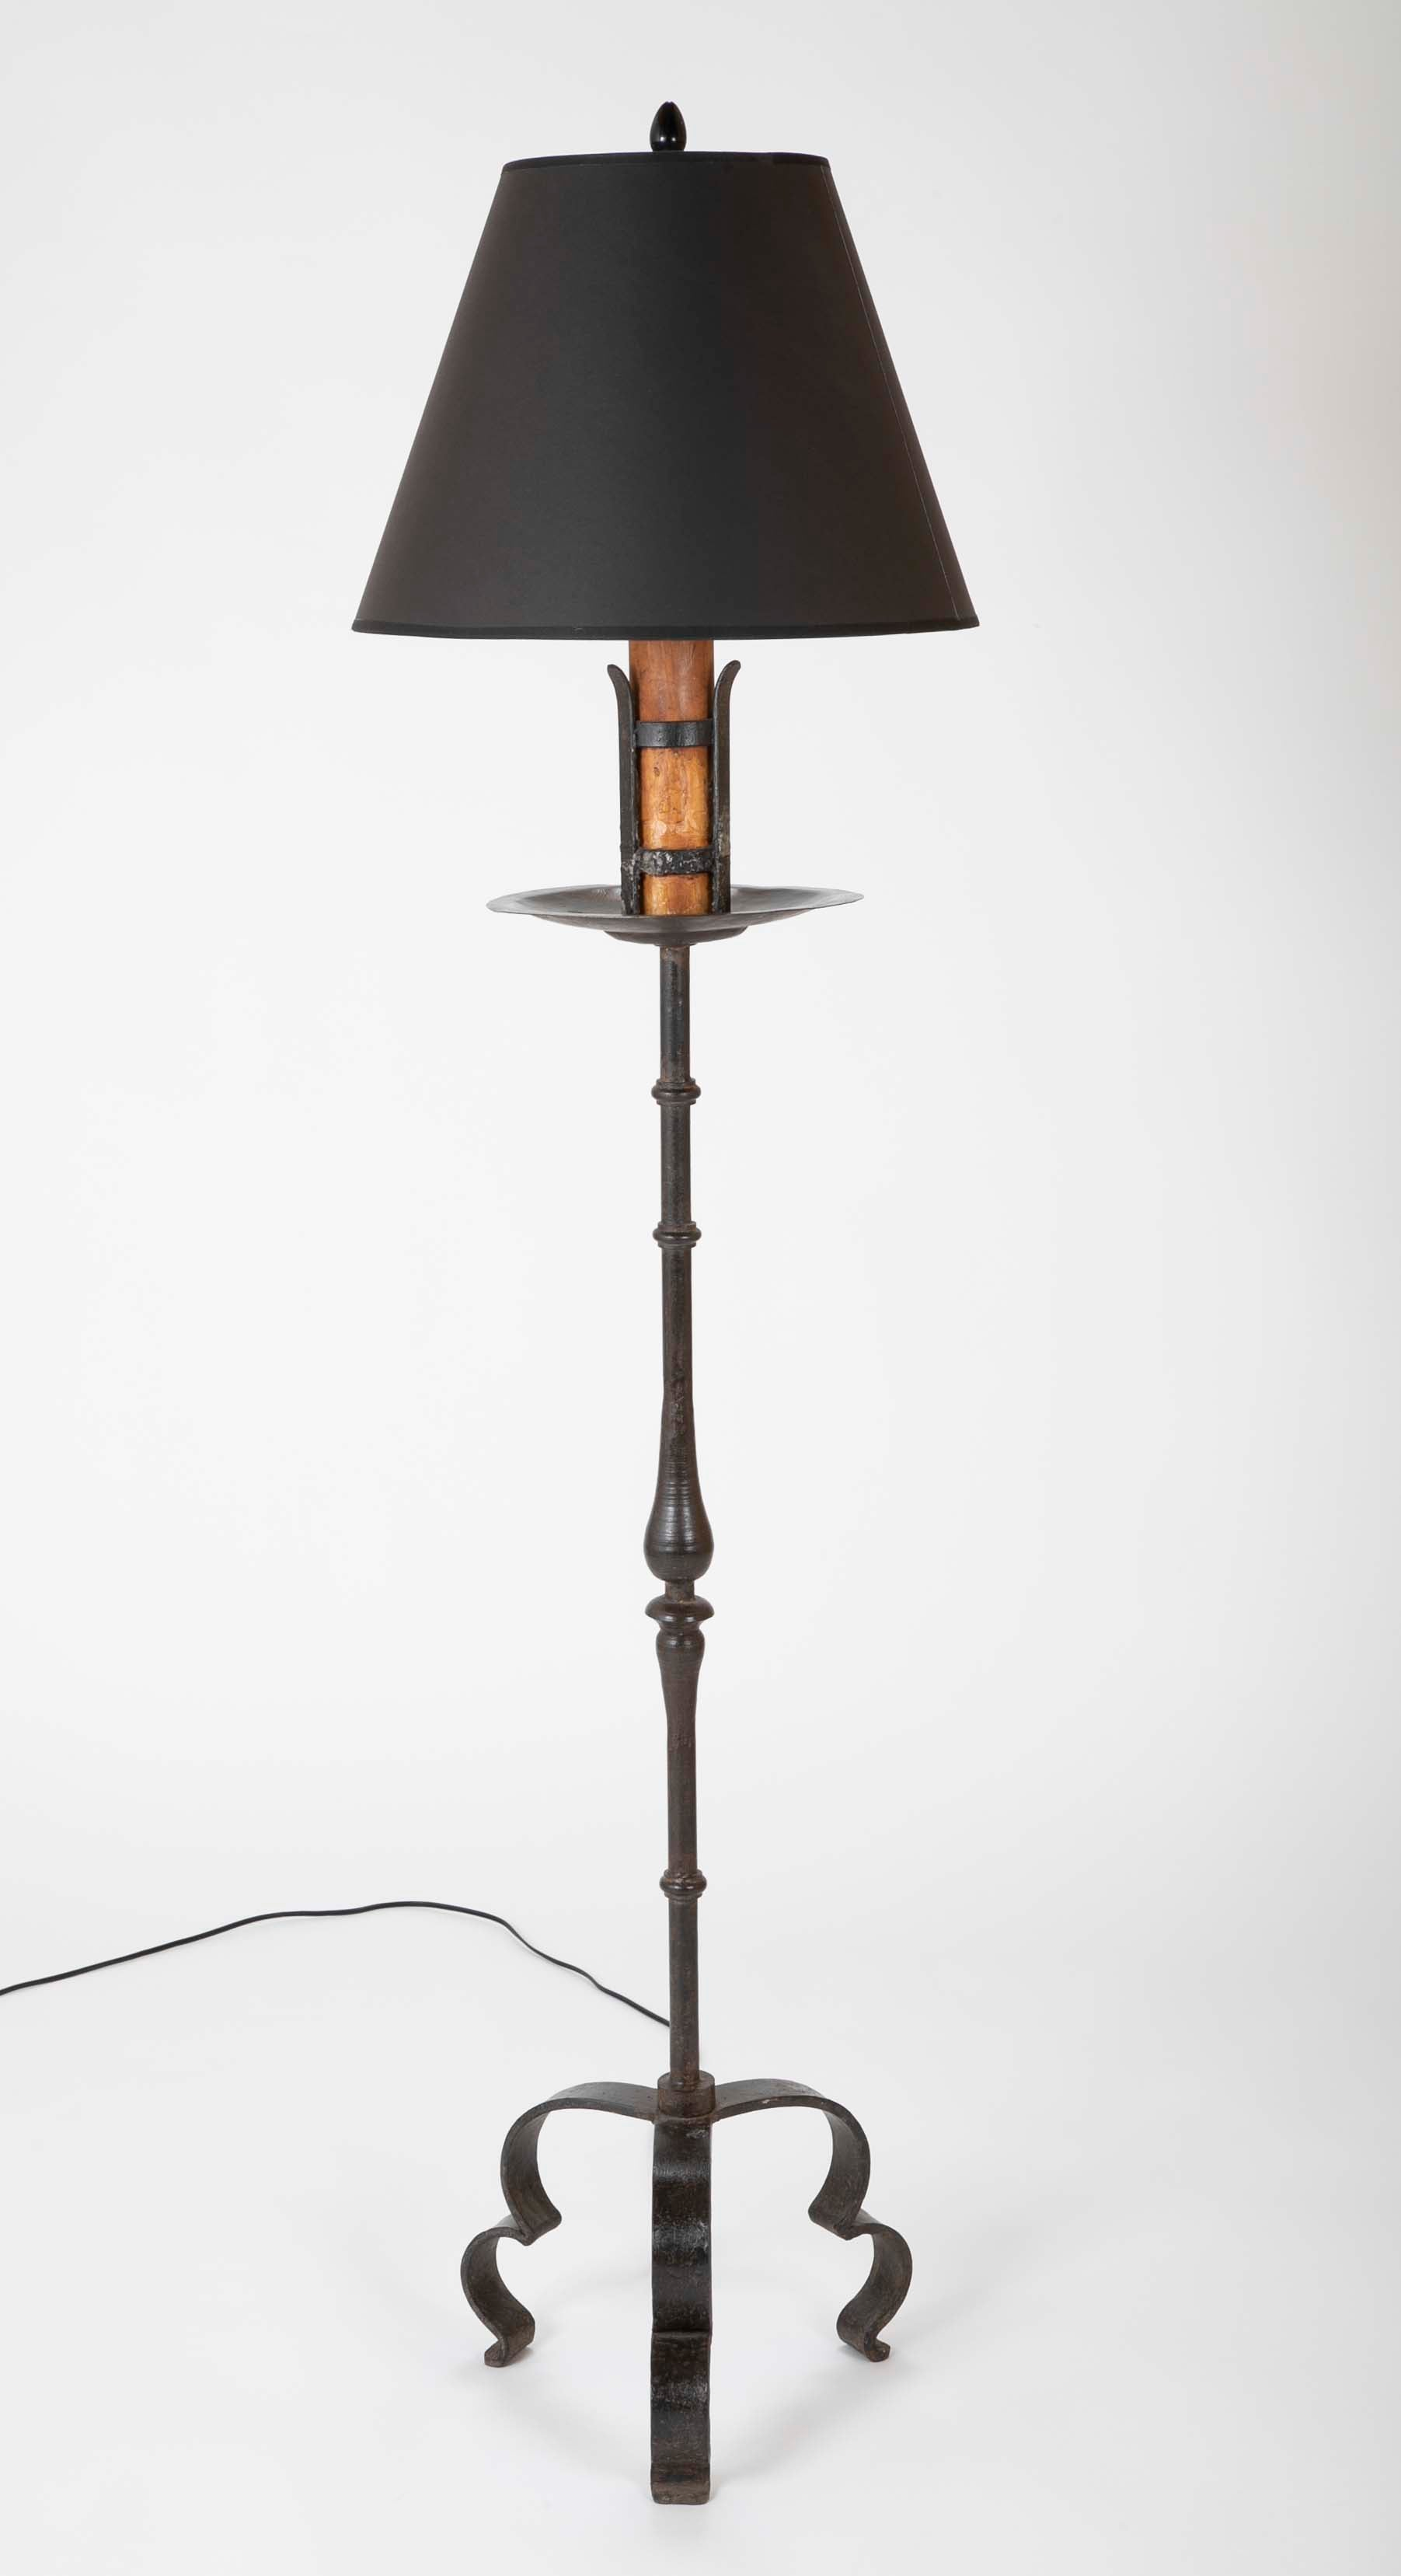 Pair of Spanish Baroque Style Wrought Iron Floor Lamps